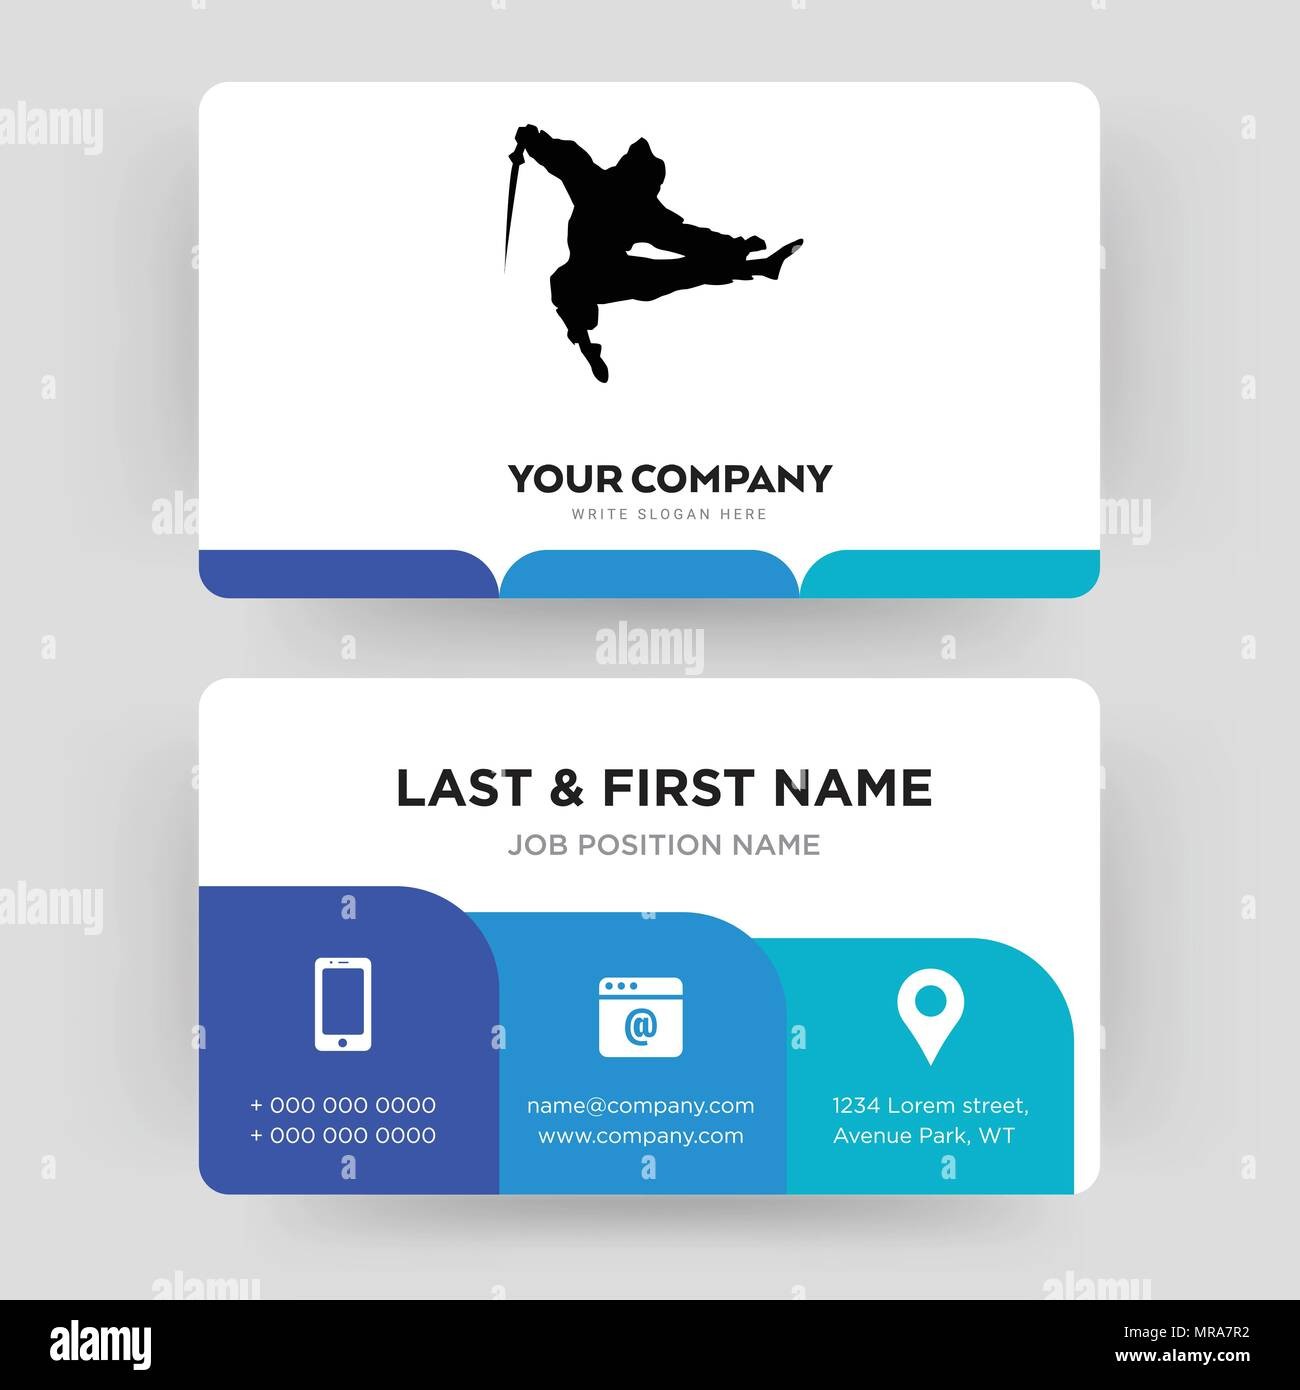 Ninja business card design inspiration